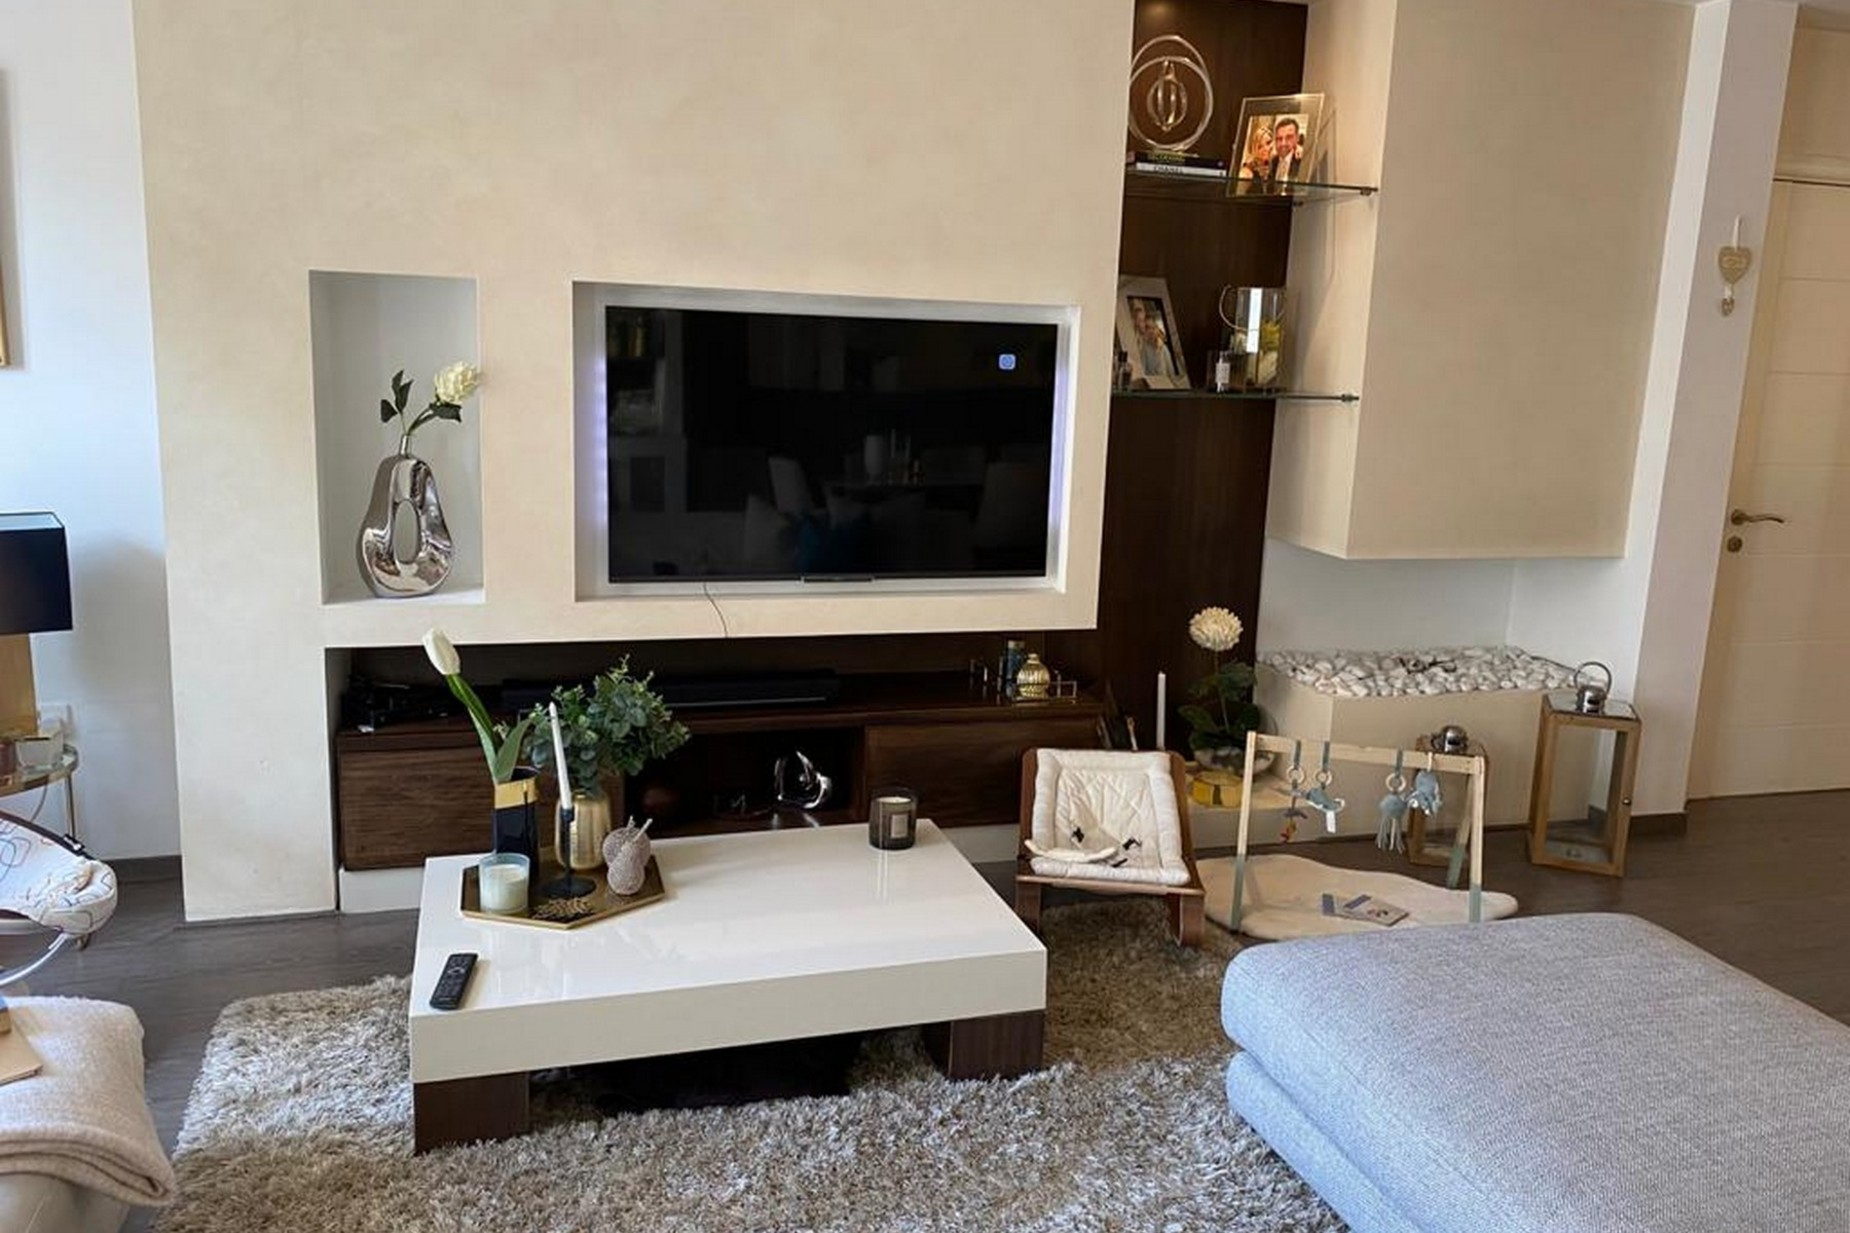 3 bed Apartment For Sale in Swieqi, Swieqi - thumb 11